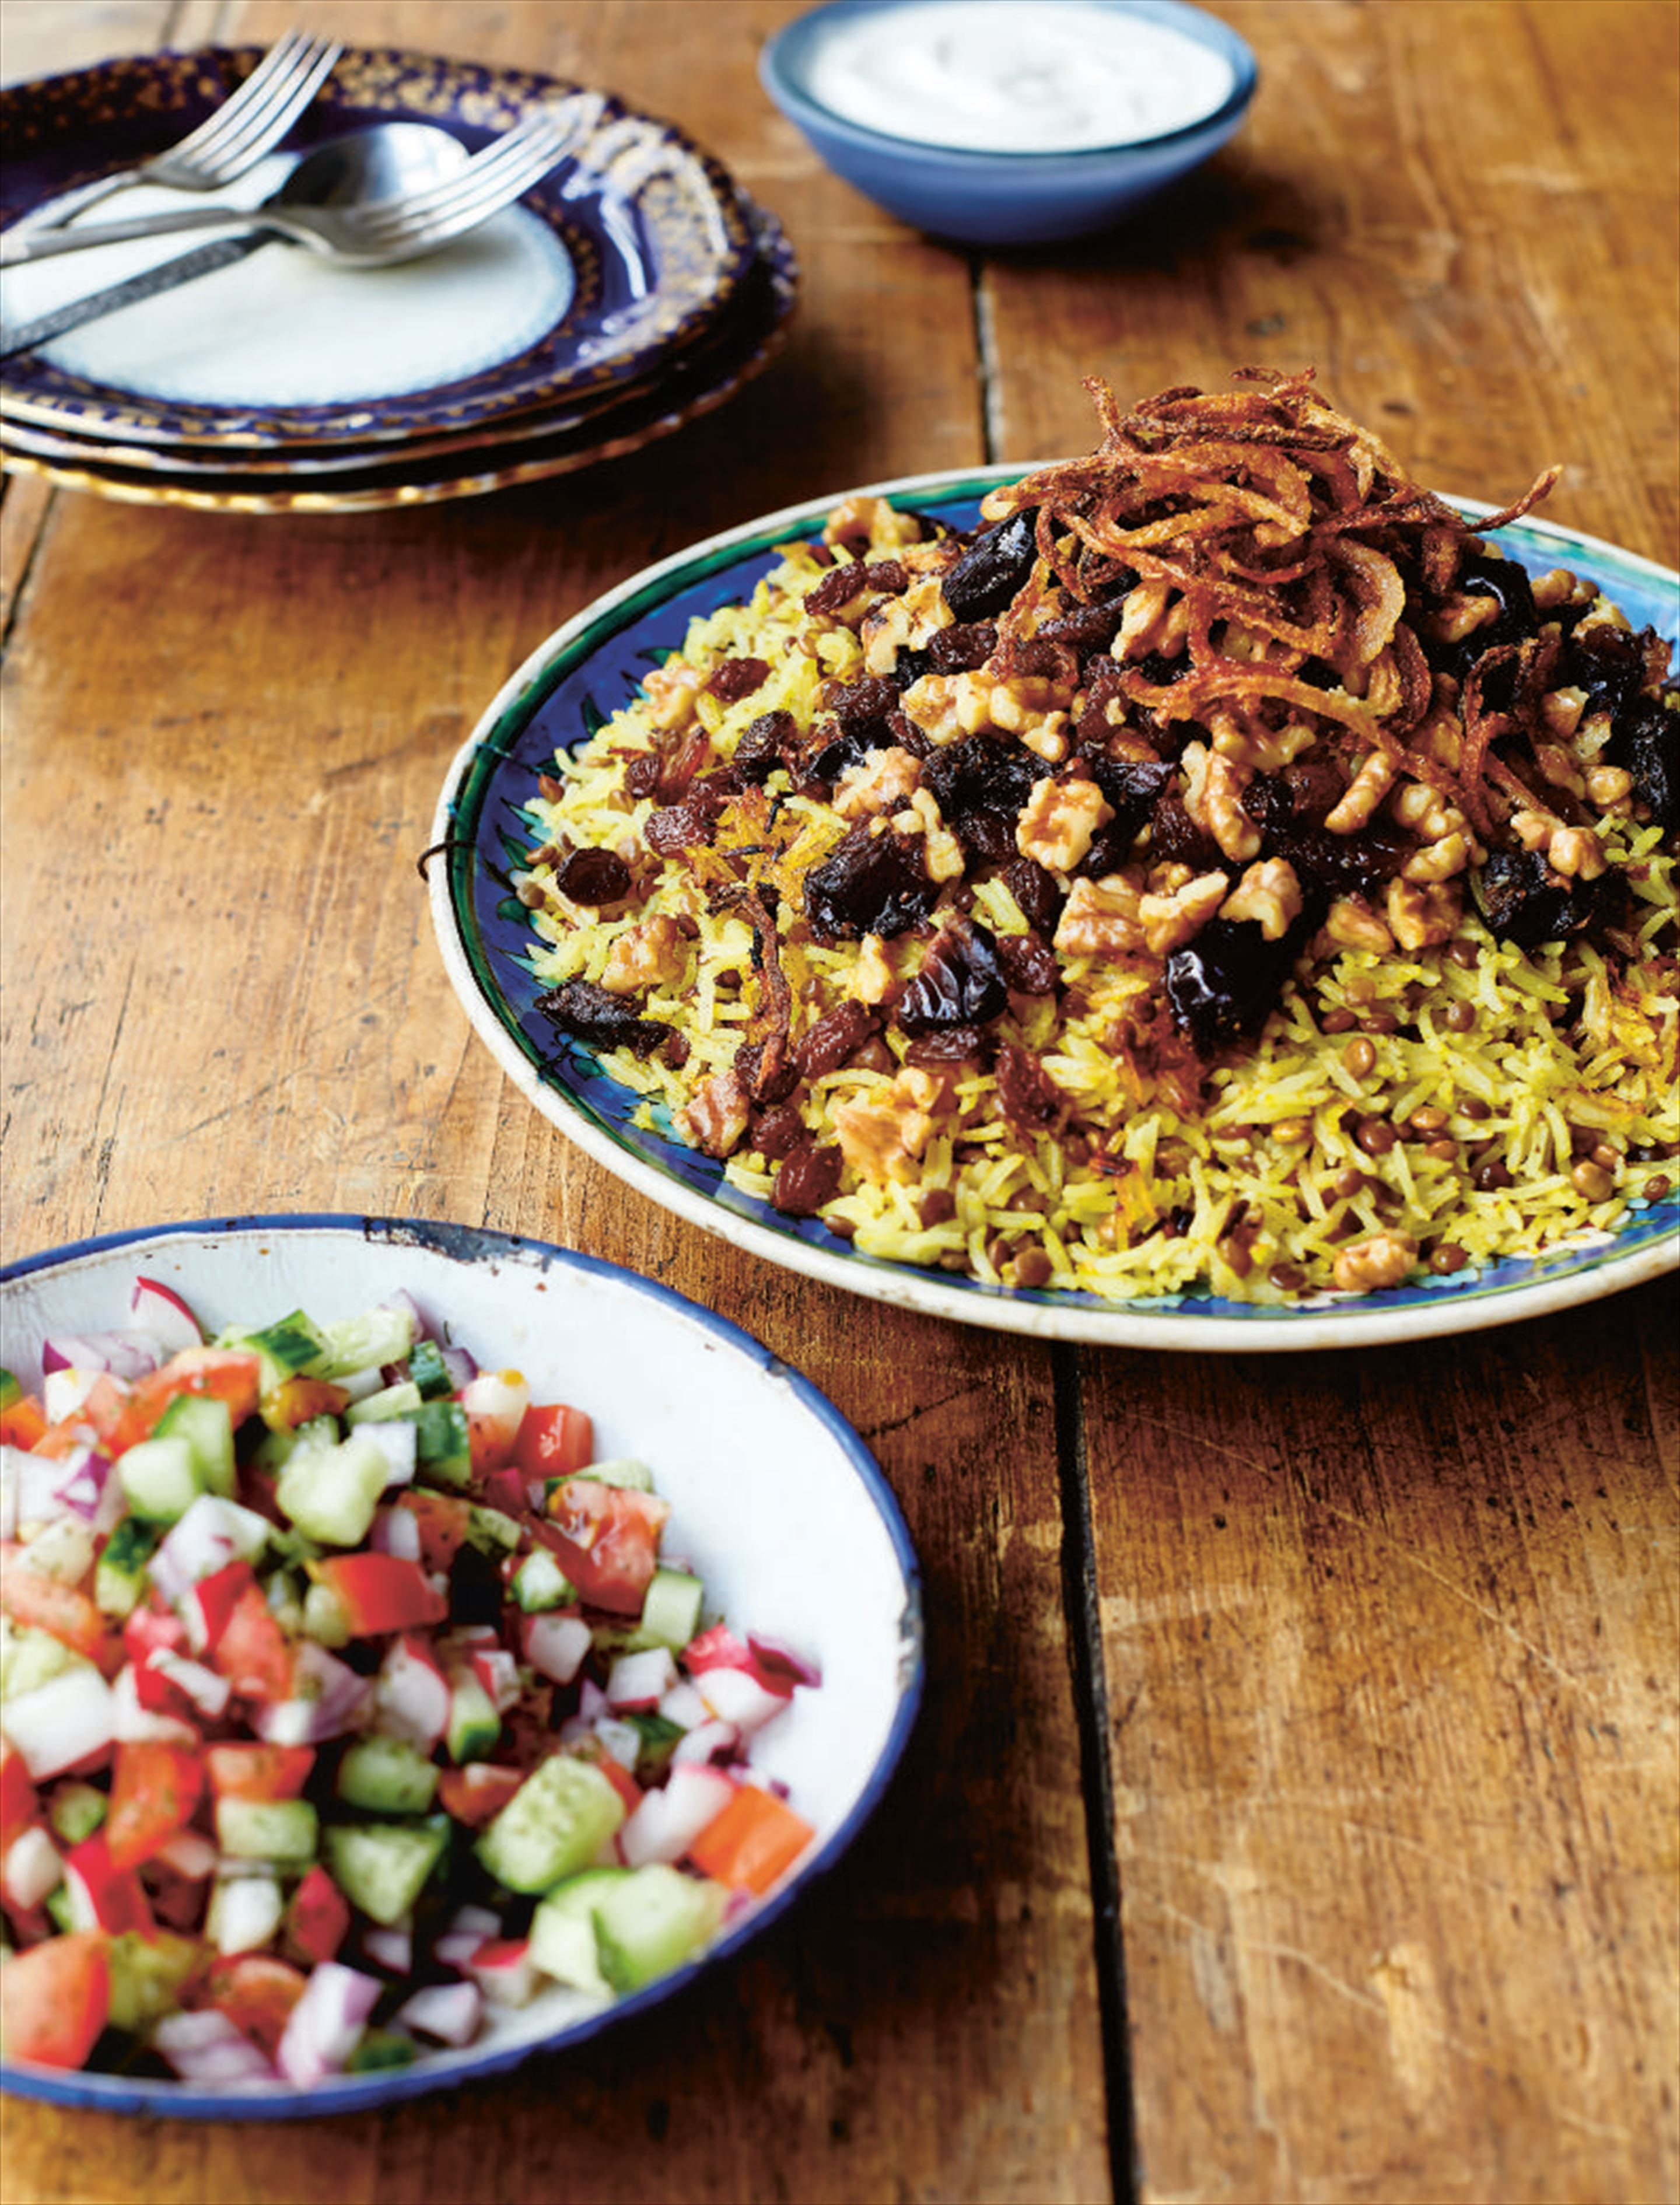 Rice with lentils, dates and walnuts